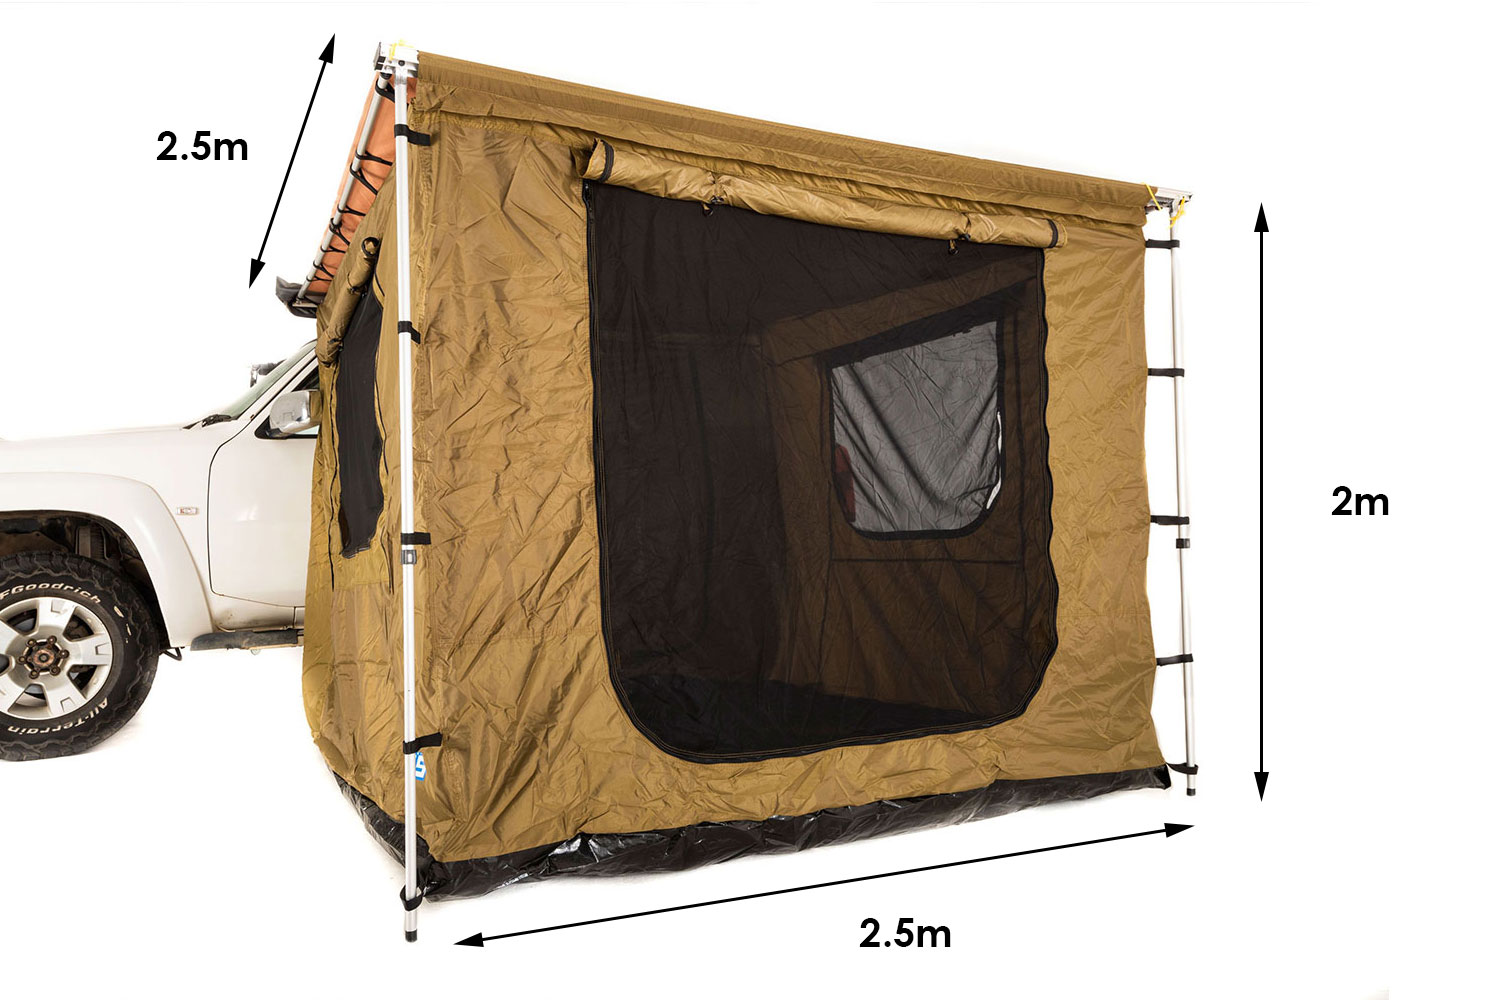 Kings Tent for 2.5x2.5m Awning | Waterproof | Fully Enclosed | Bucket Floor